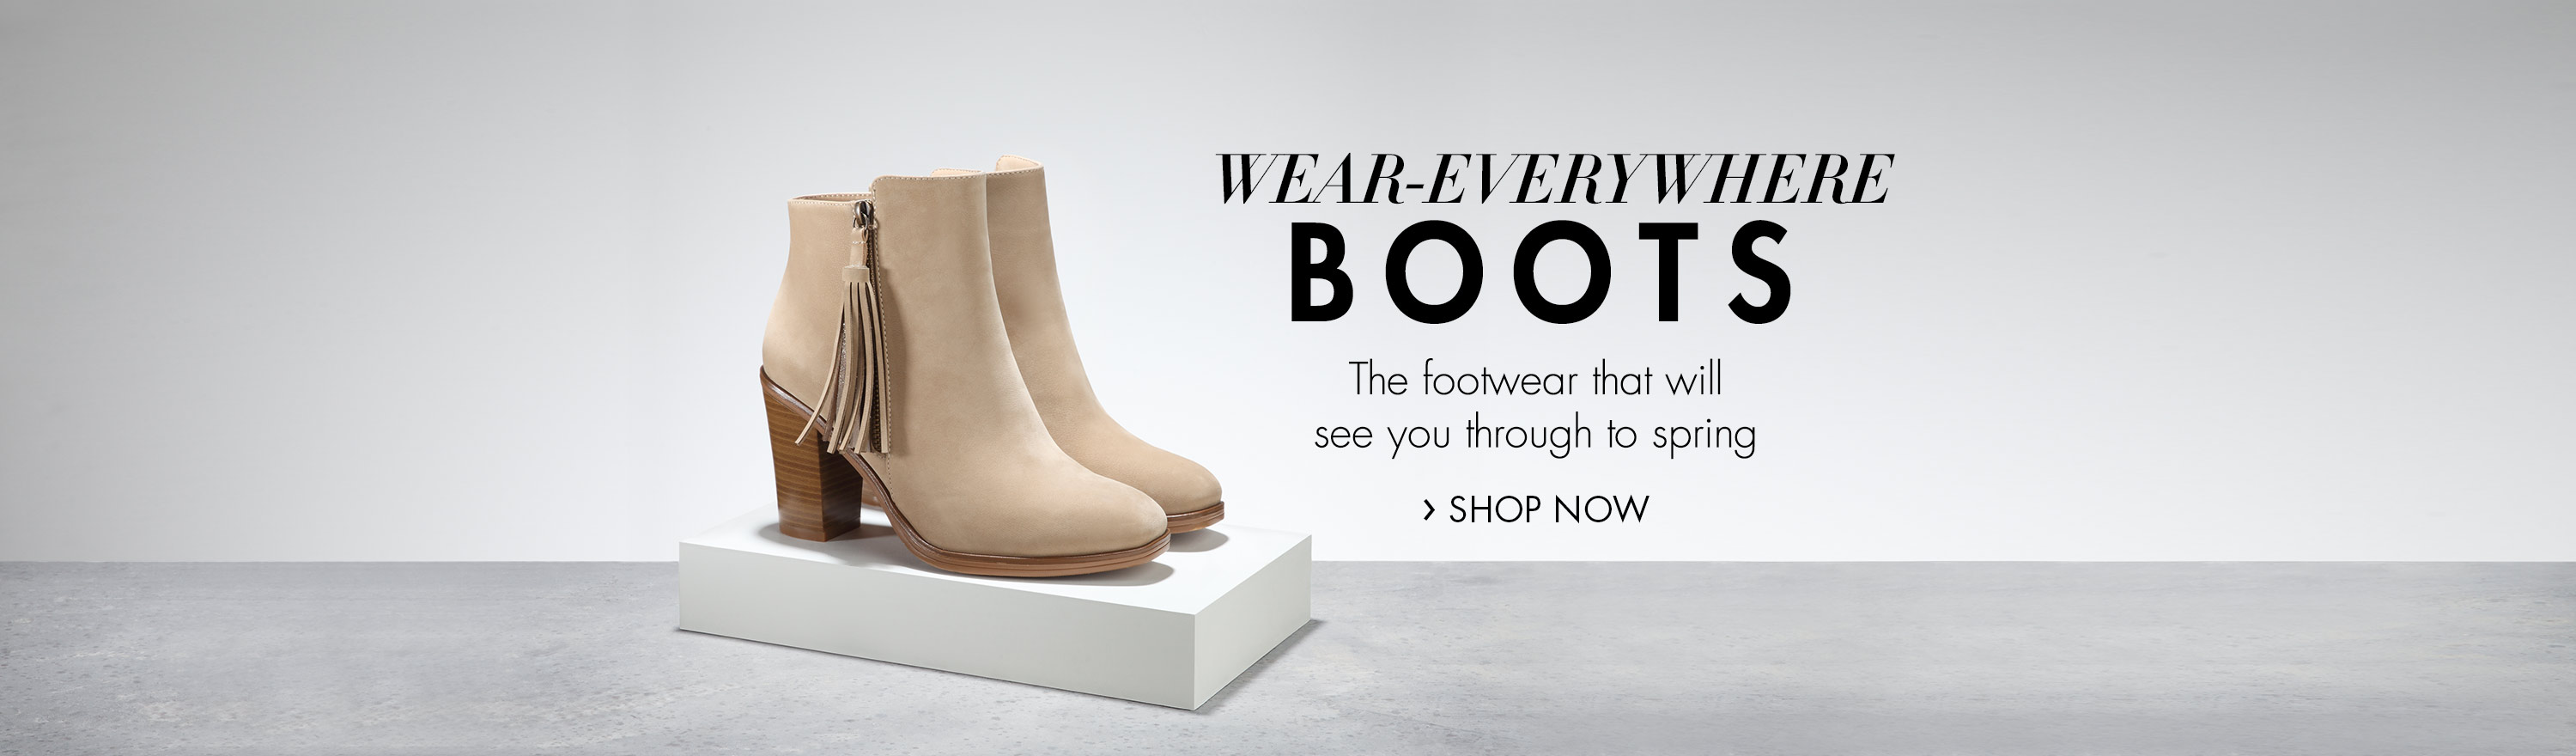 Wear-everywhere boots